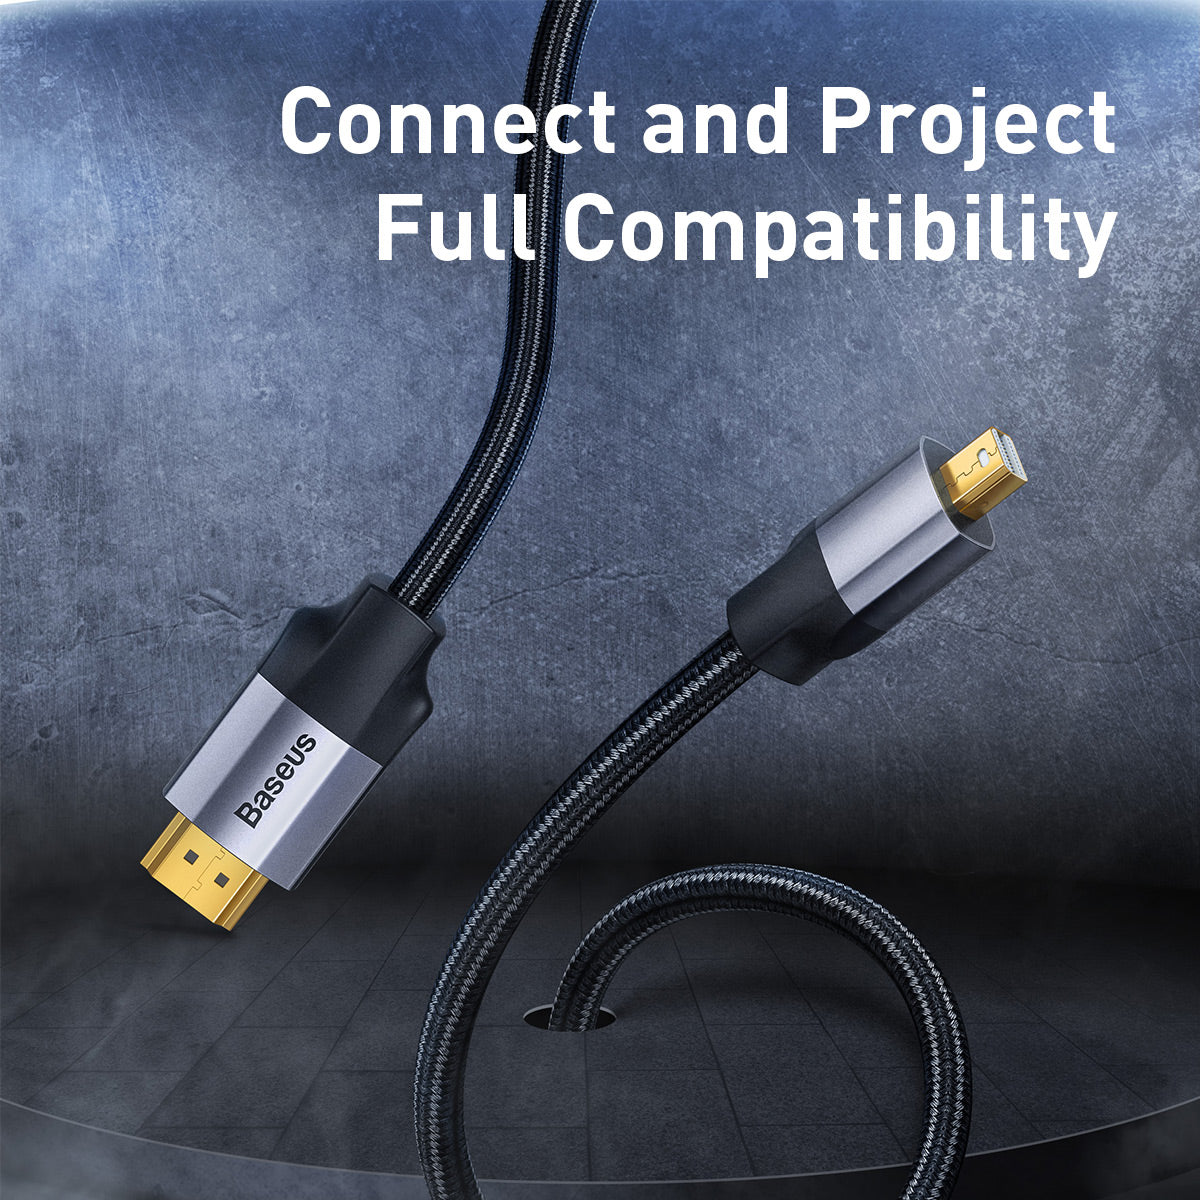 Basues_Mini_DP_to_HDMI_project_SA8TKHF7LWV6.jpg